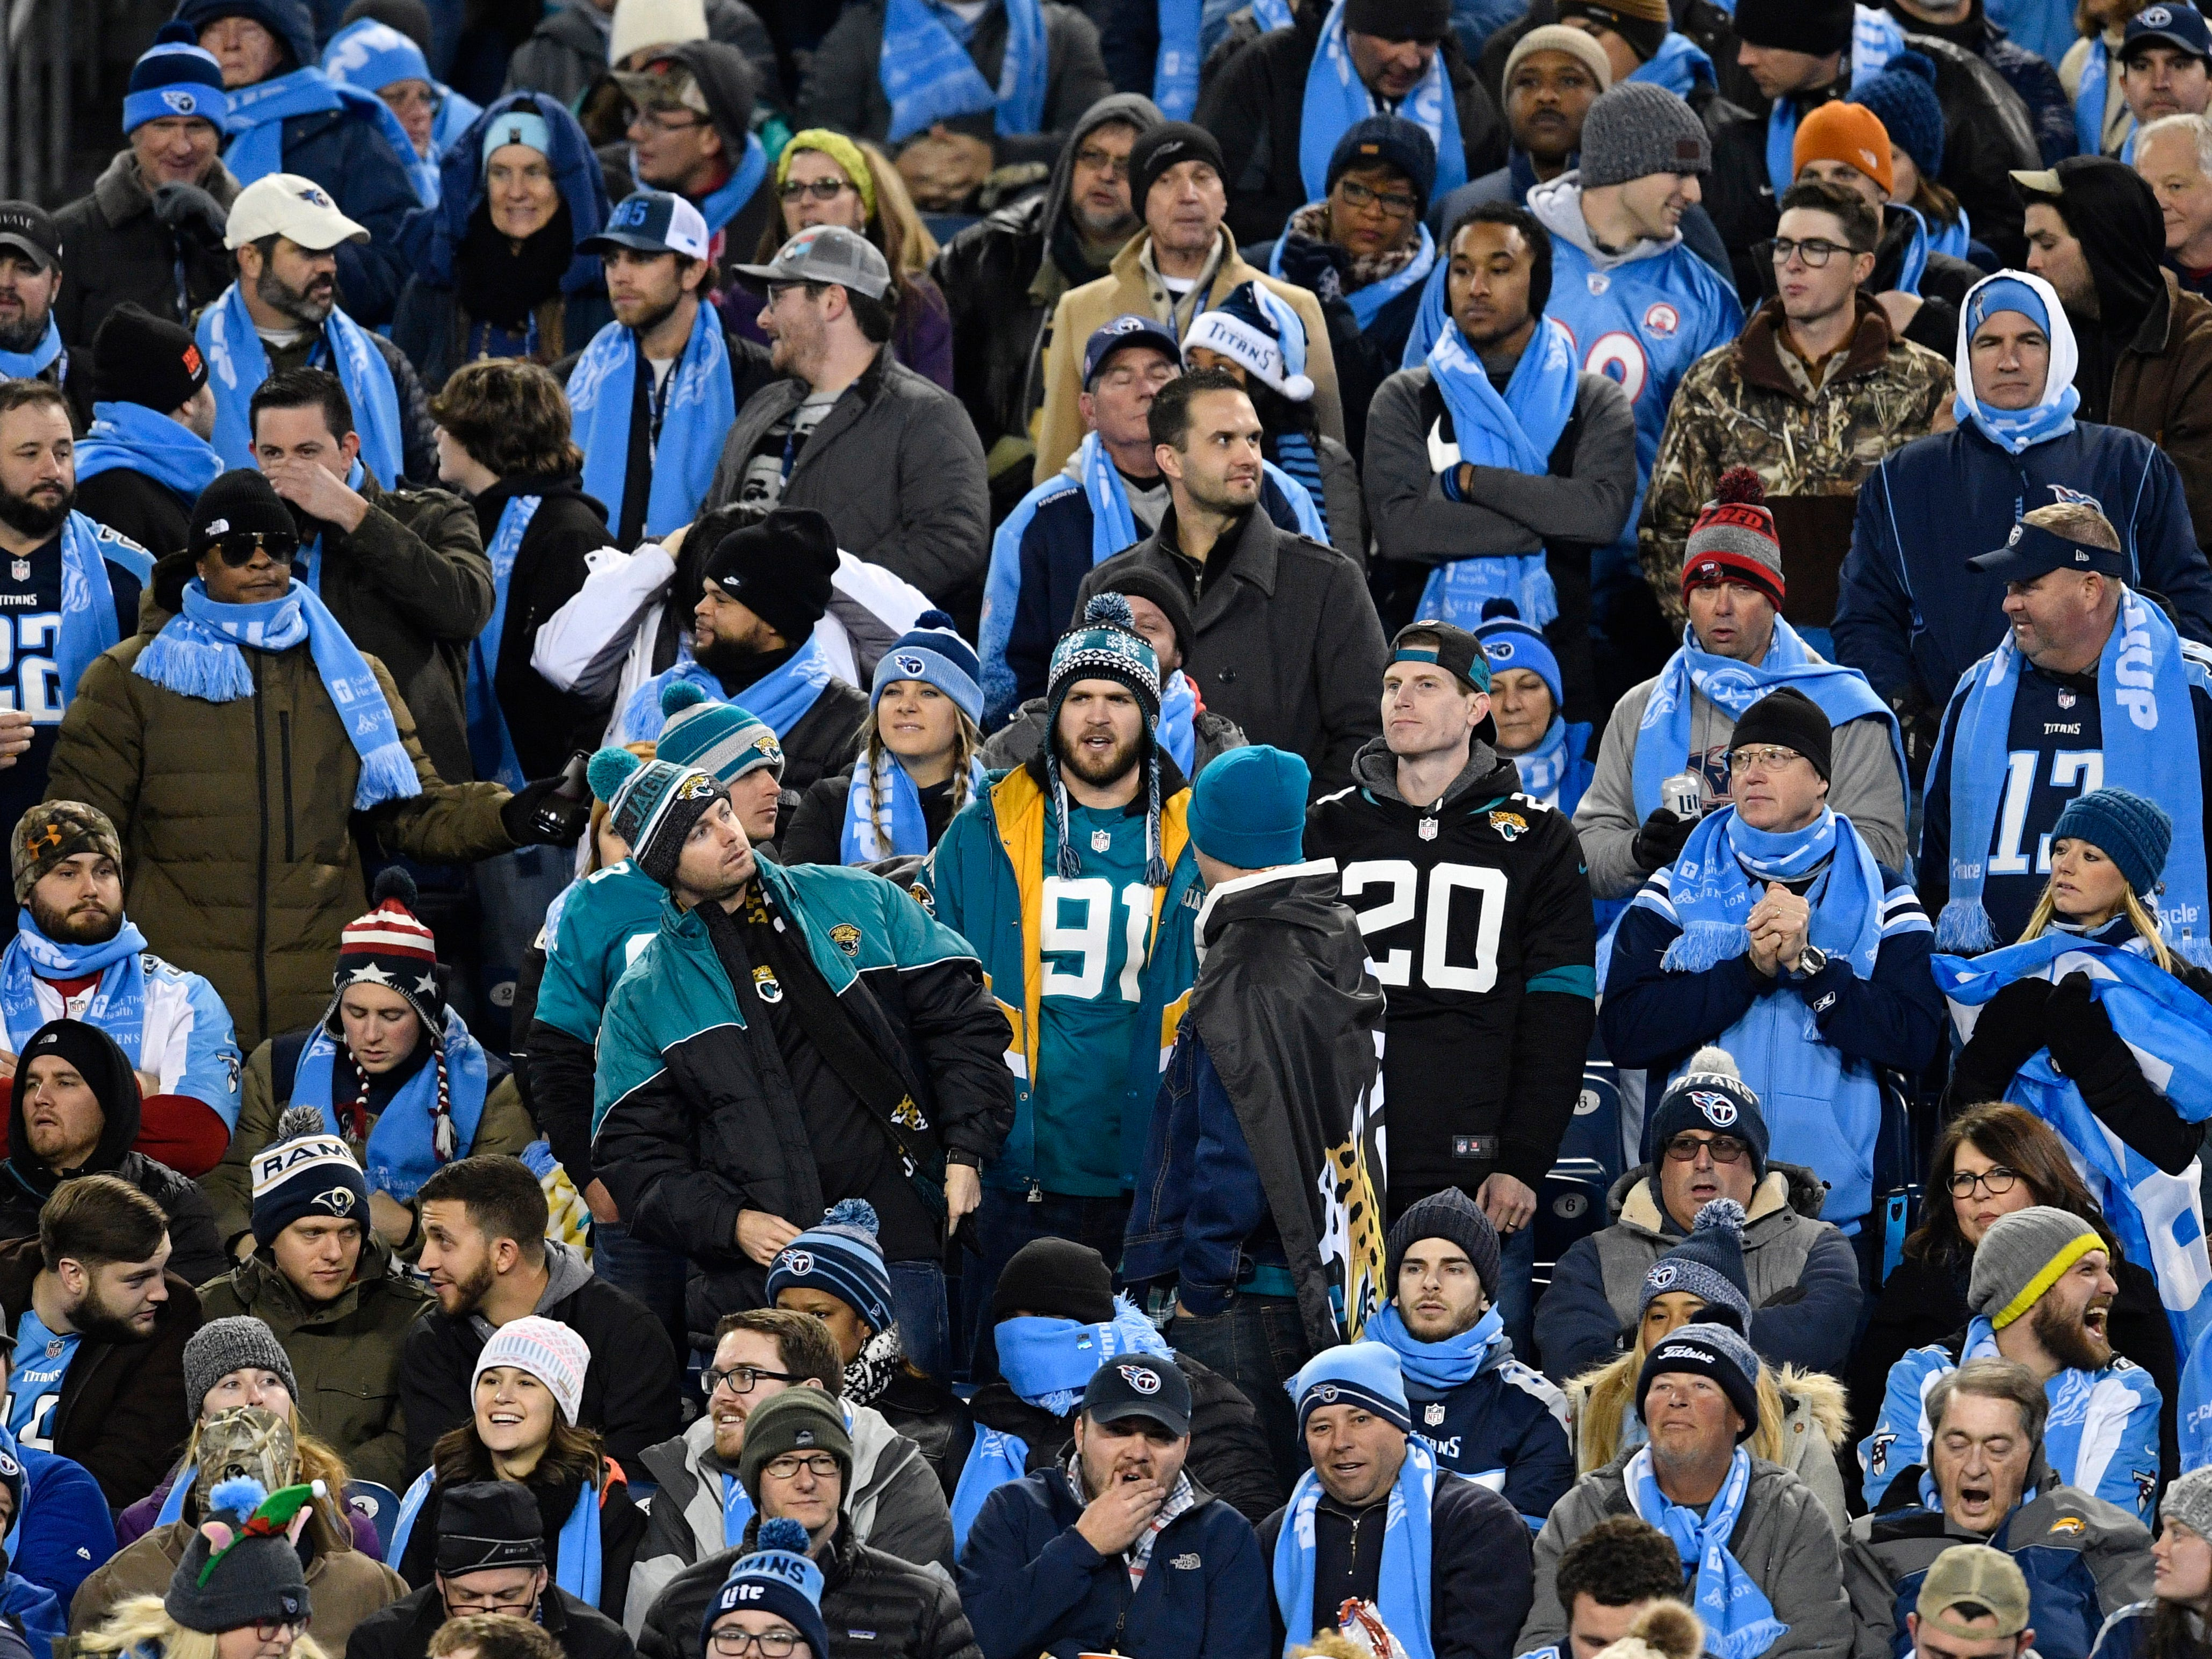 A sea of Titans fans surround a few Jags fans in the first half at Nissan Stadium Thursday, Dec. 6, 2018, in Nashville, Tenn.